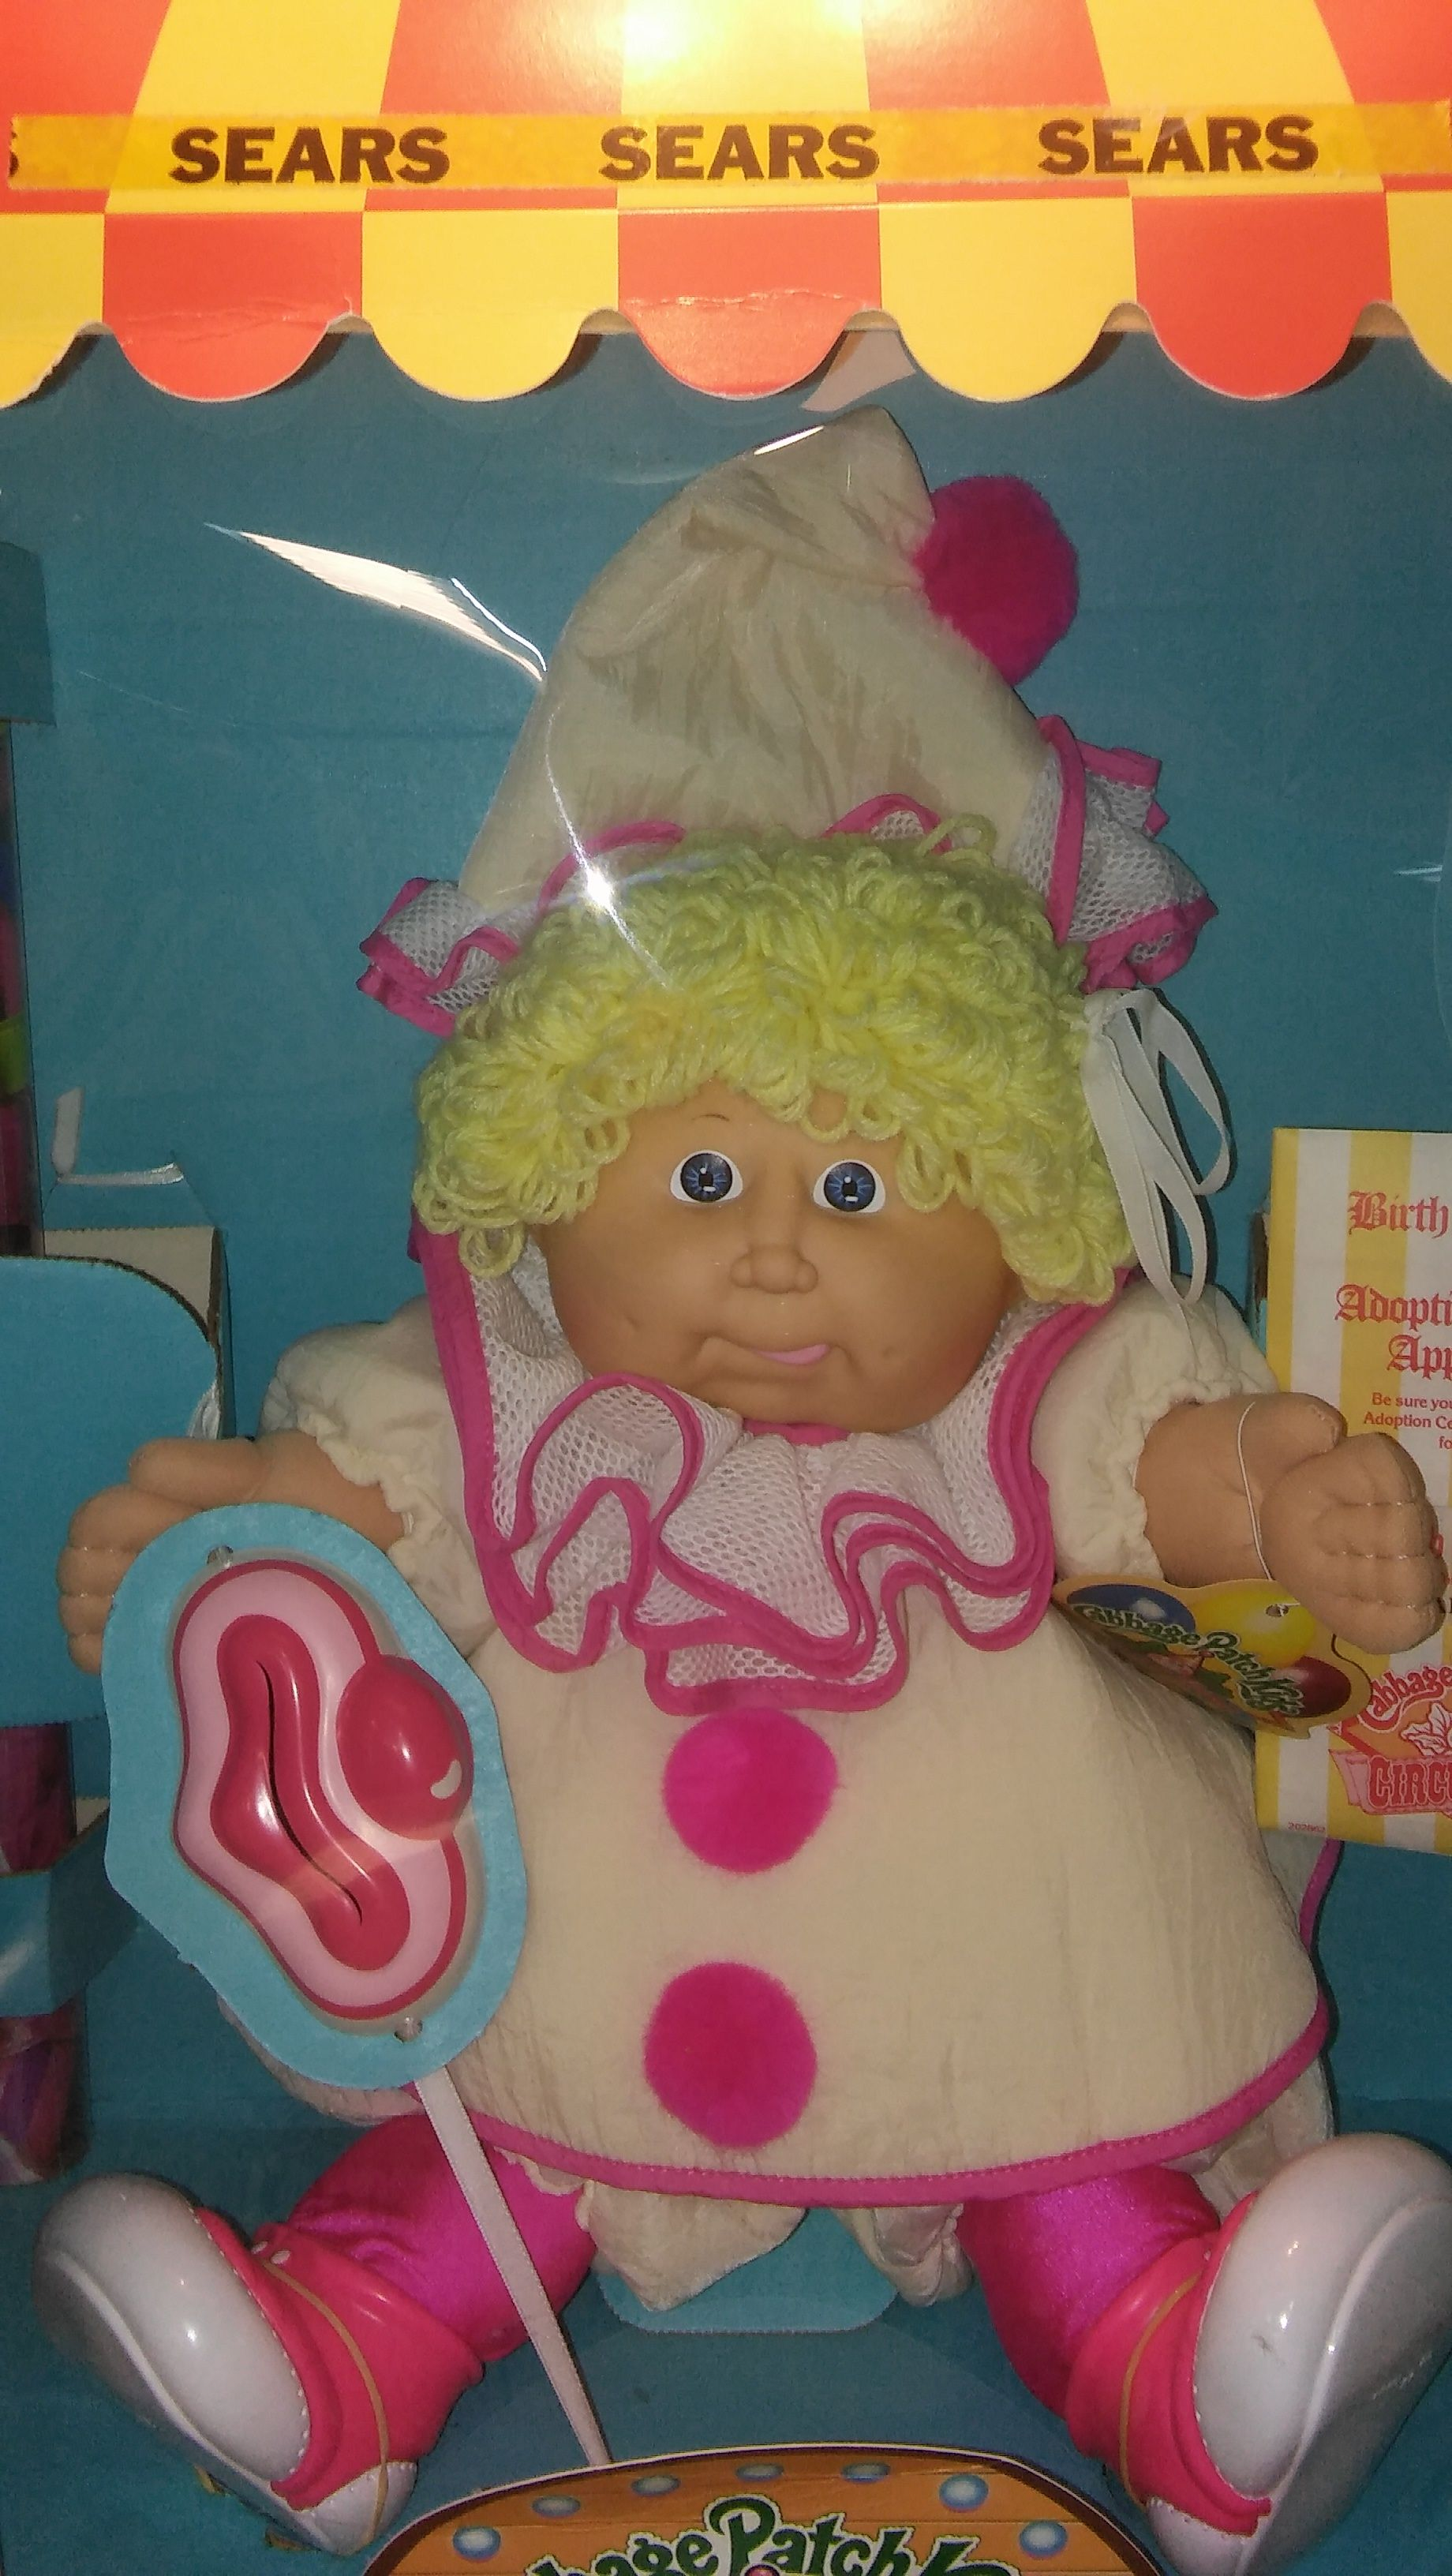 Cabbage Patch Kids Circus Kids This Is A Female Clown Named Gail Mona She Has Blonde Hair Her Tongu Cabbage Patch Kids Cabbage Patch Dolls Cabbage Patch